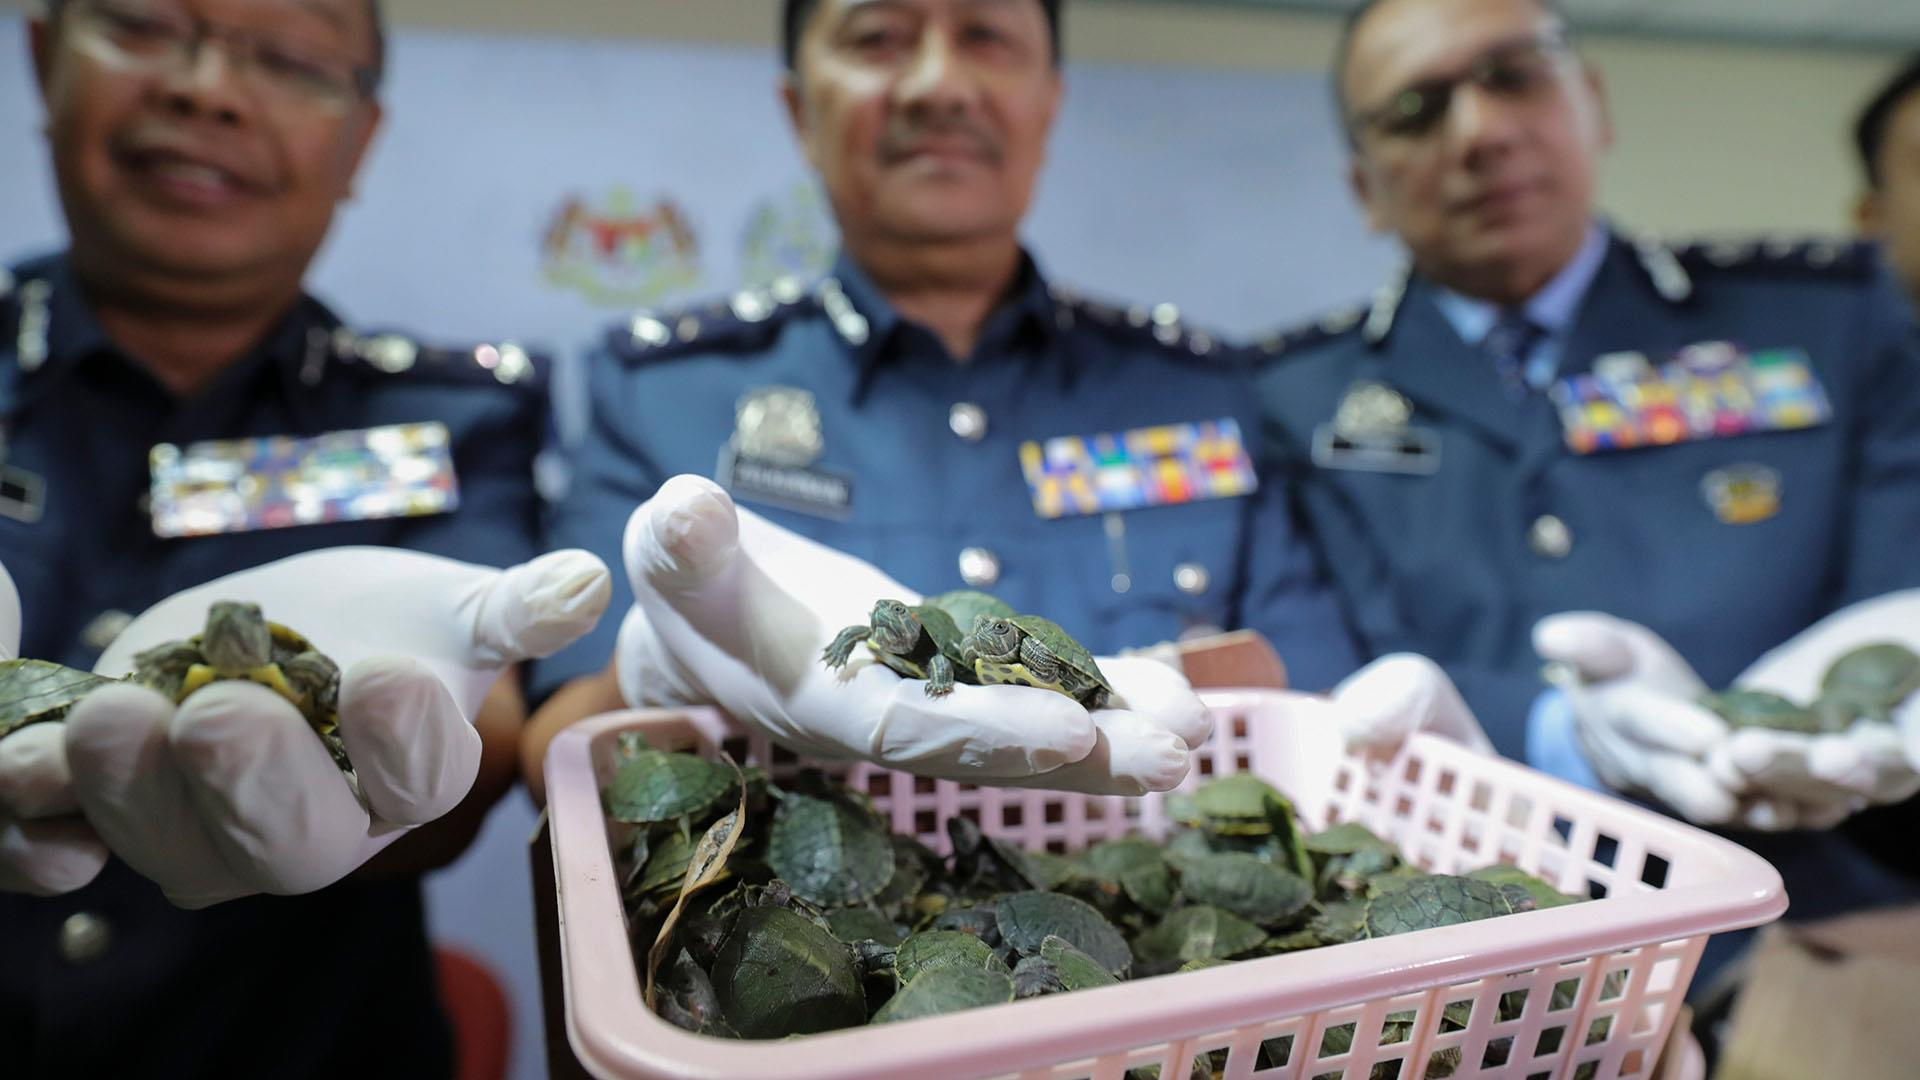 Kuala Lumpur airport officials seize over 5,000 smuggled turtles in luggage